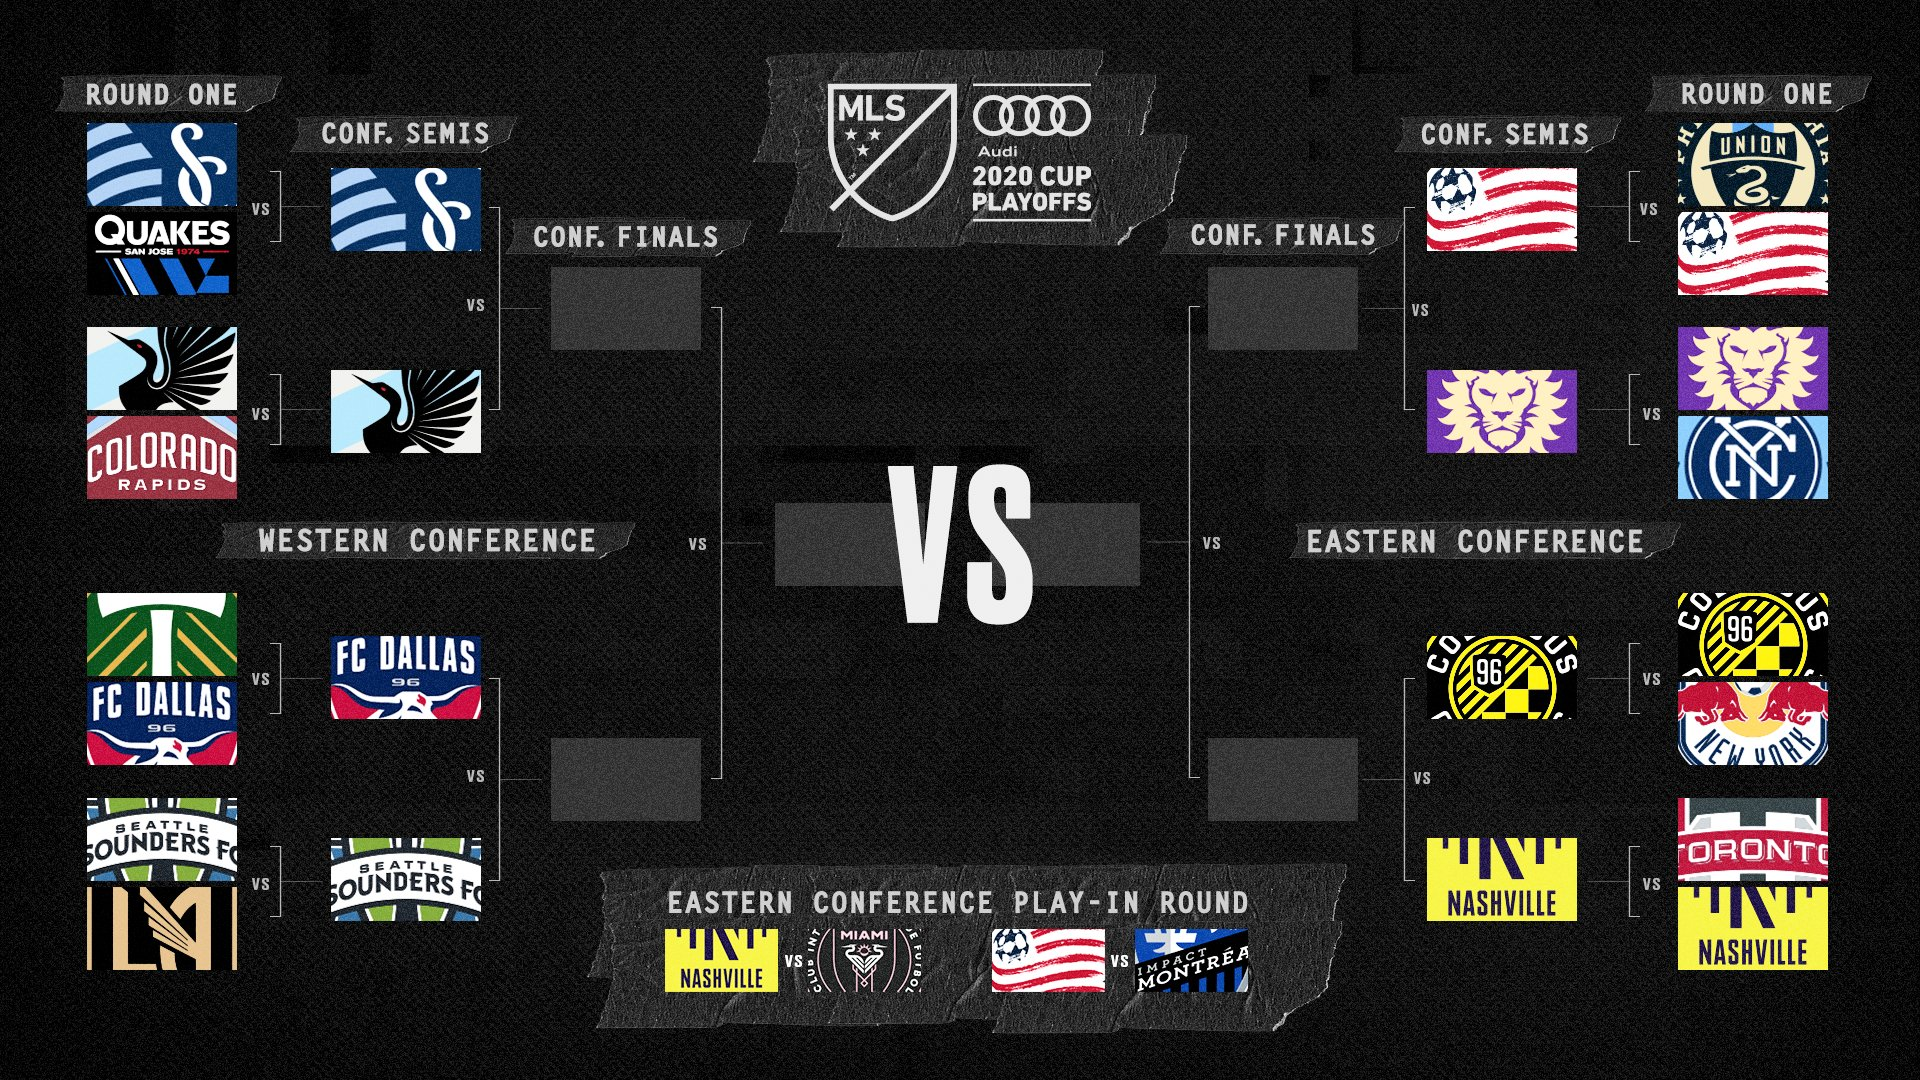 MLS Conference Semifinals